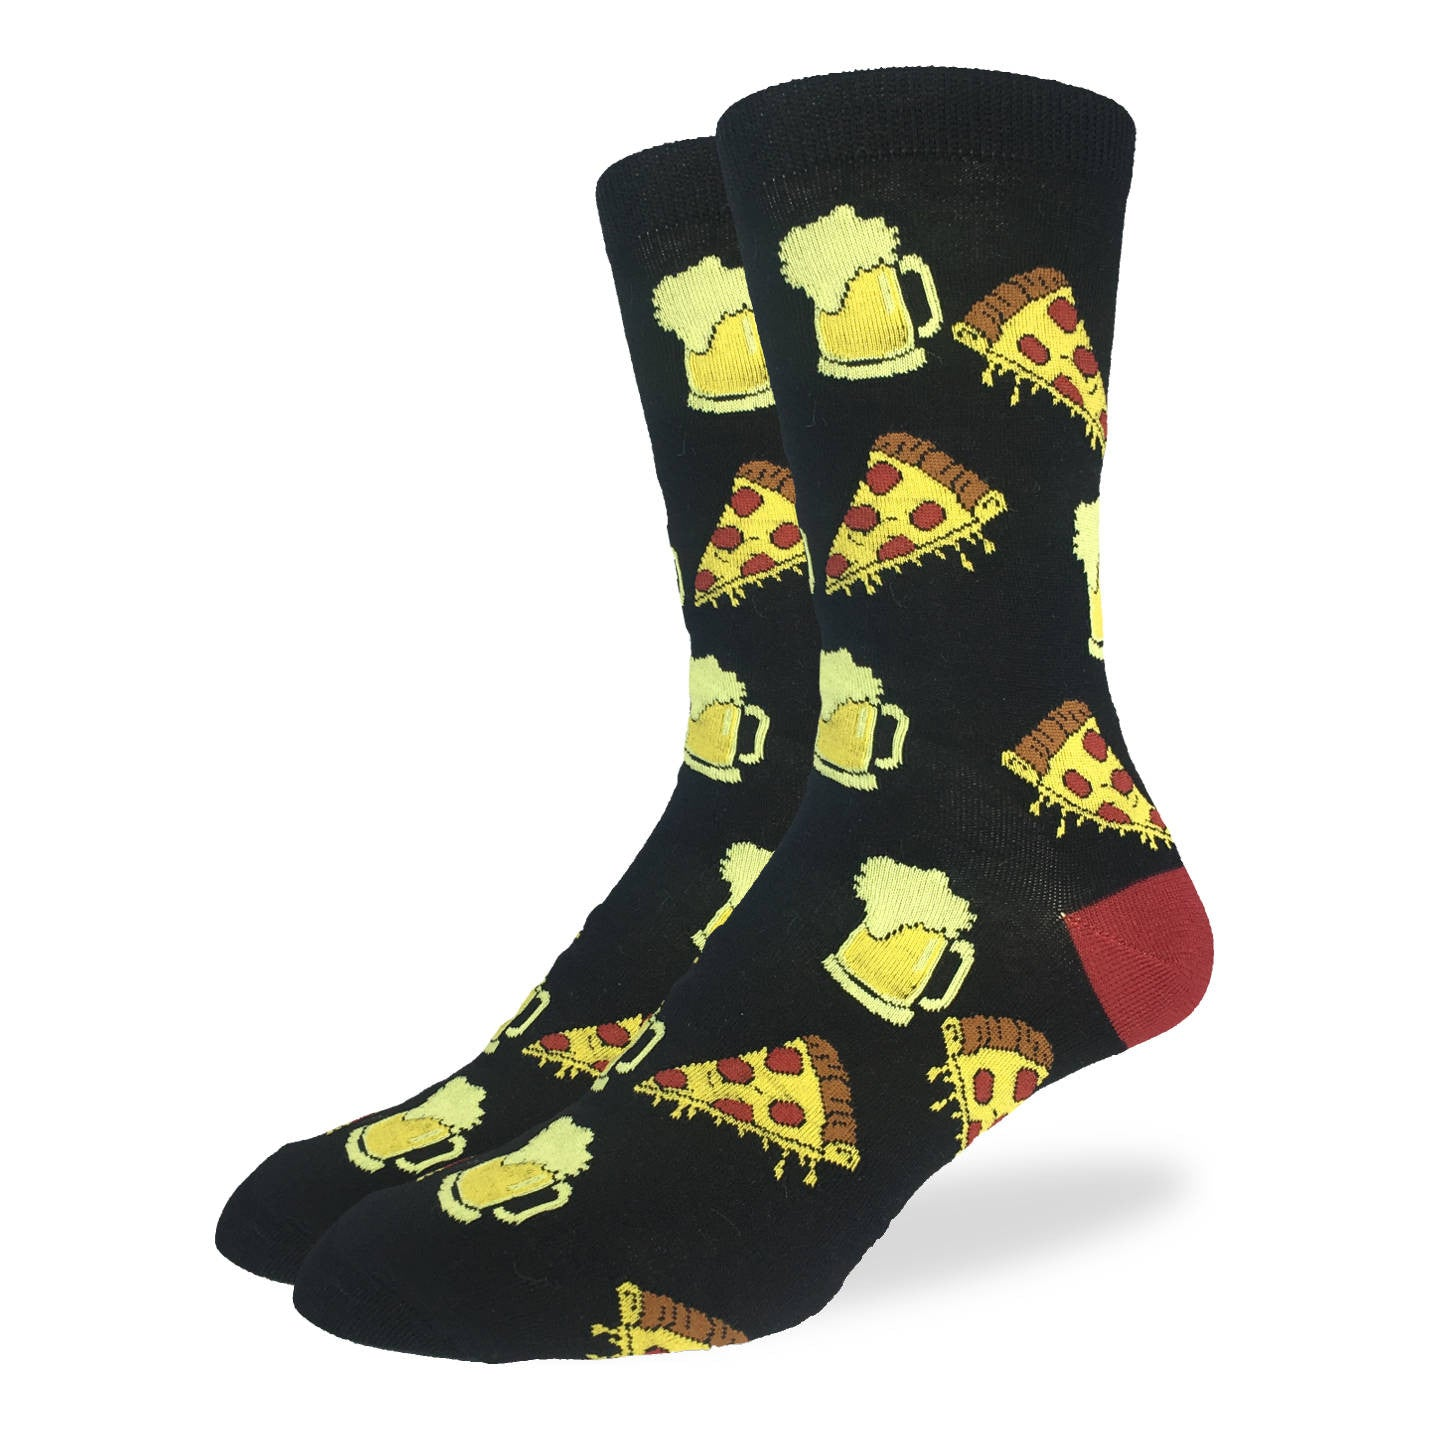 Men's Pizza & Beer Socks - Good Luck Sock